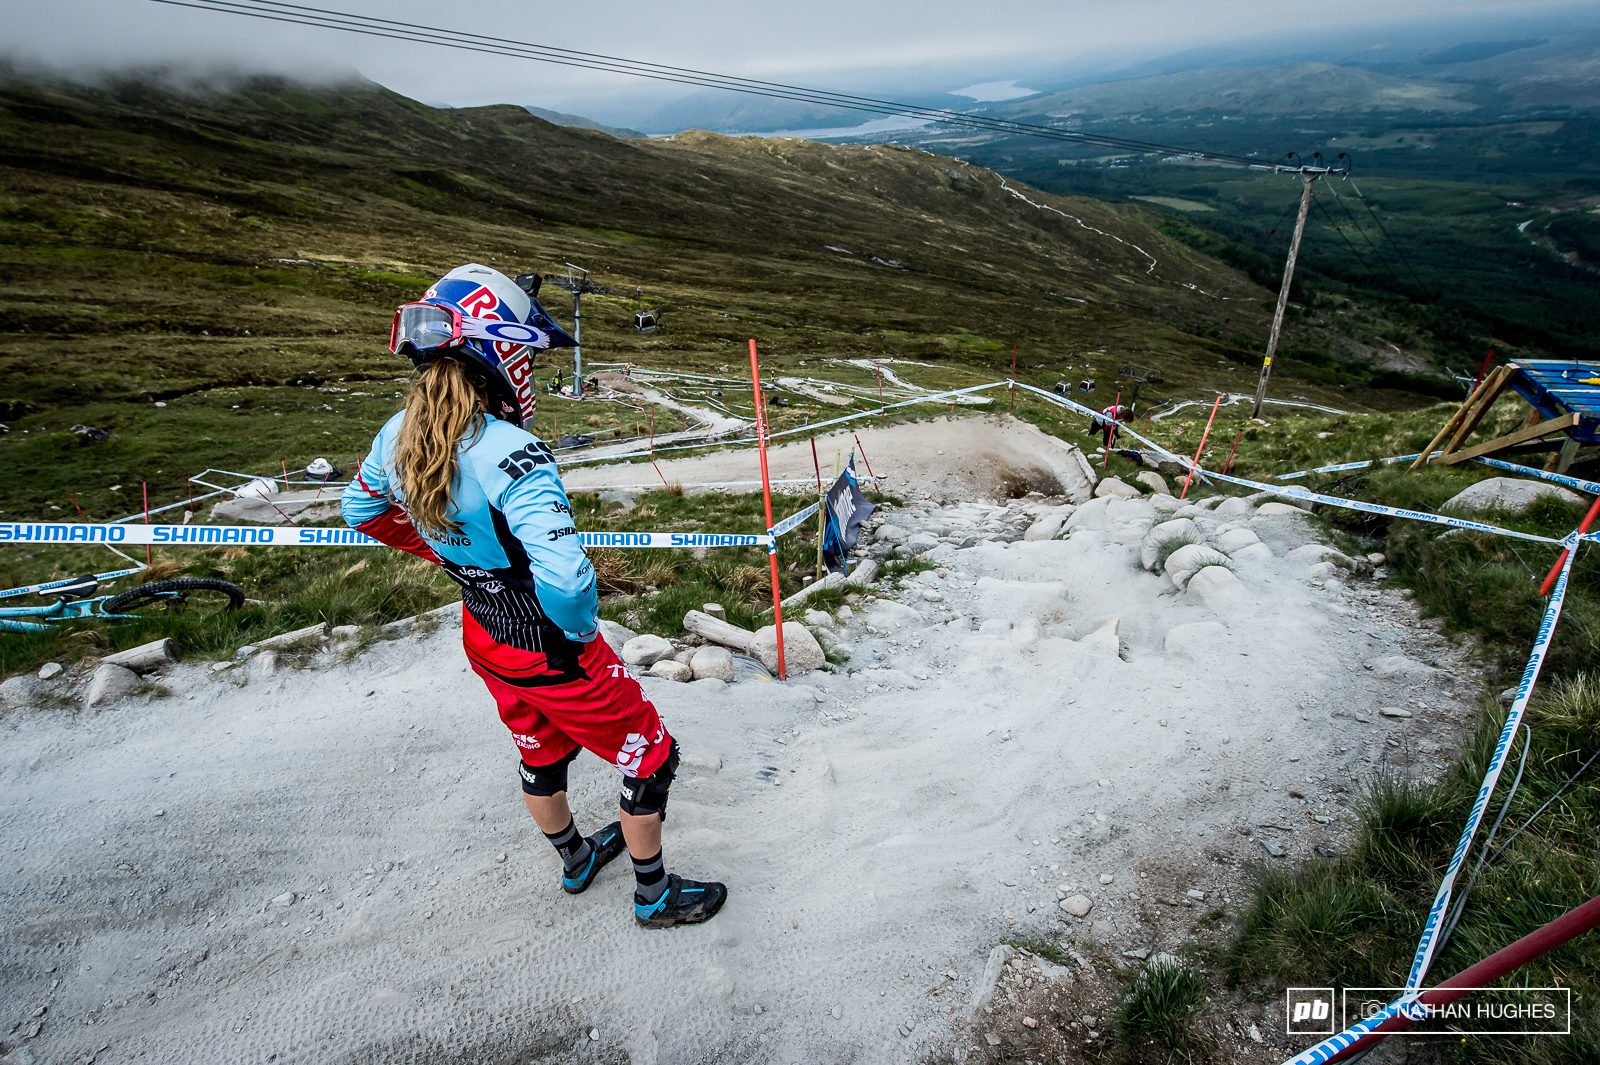 As if Rachel Atherton needs to get any faster... Then again if she does come off again tomorrow maybe she ll still have the margin to keep Manon at bay.